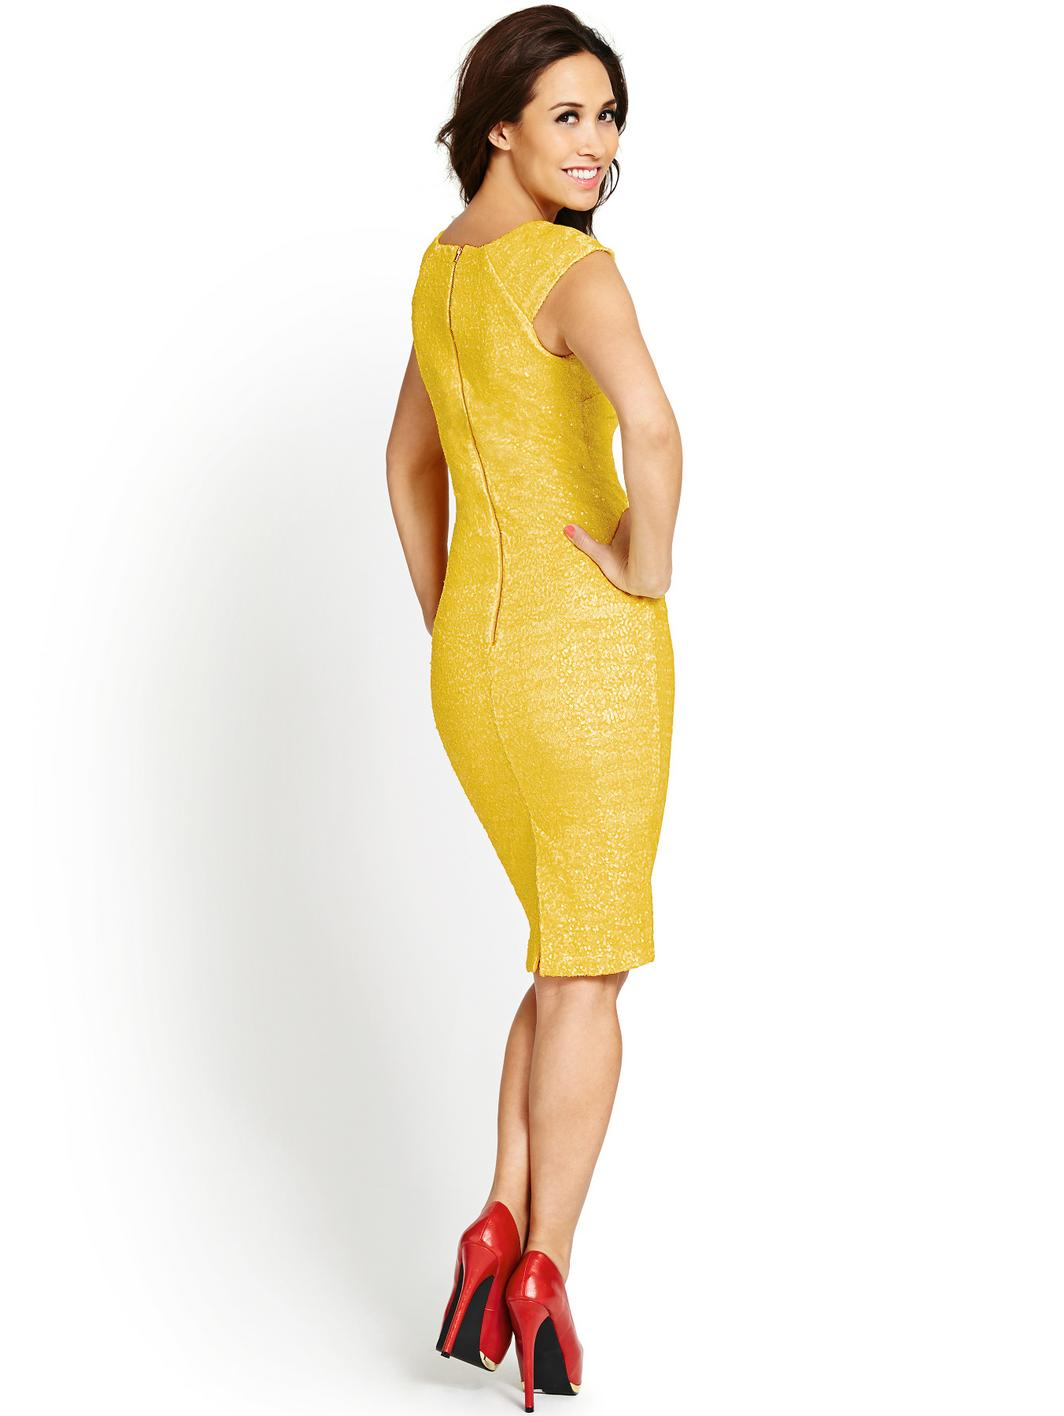 Myleene Klass Littlewoods Collection 2014 76 Gotceleb